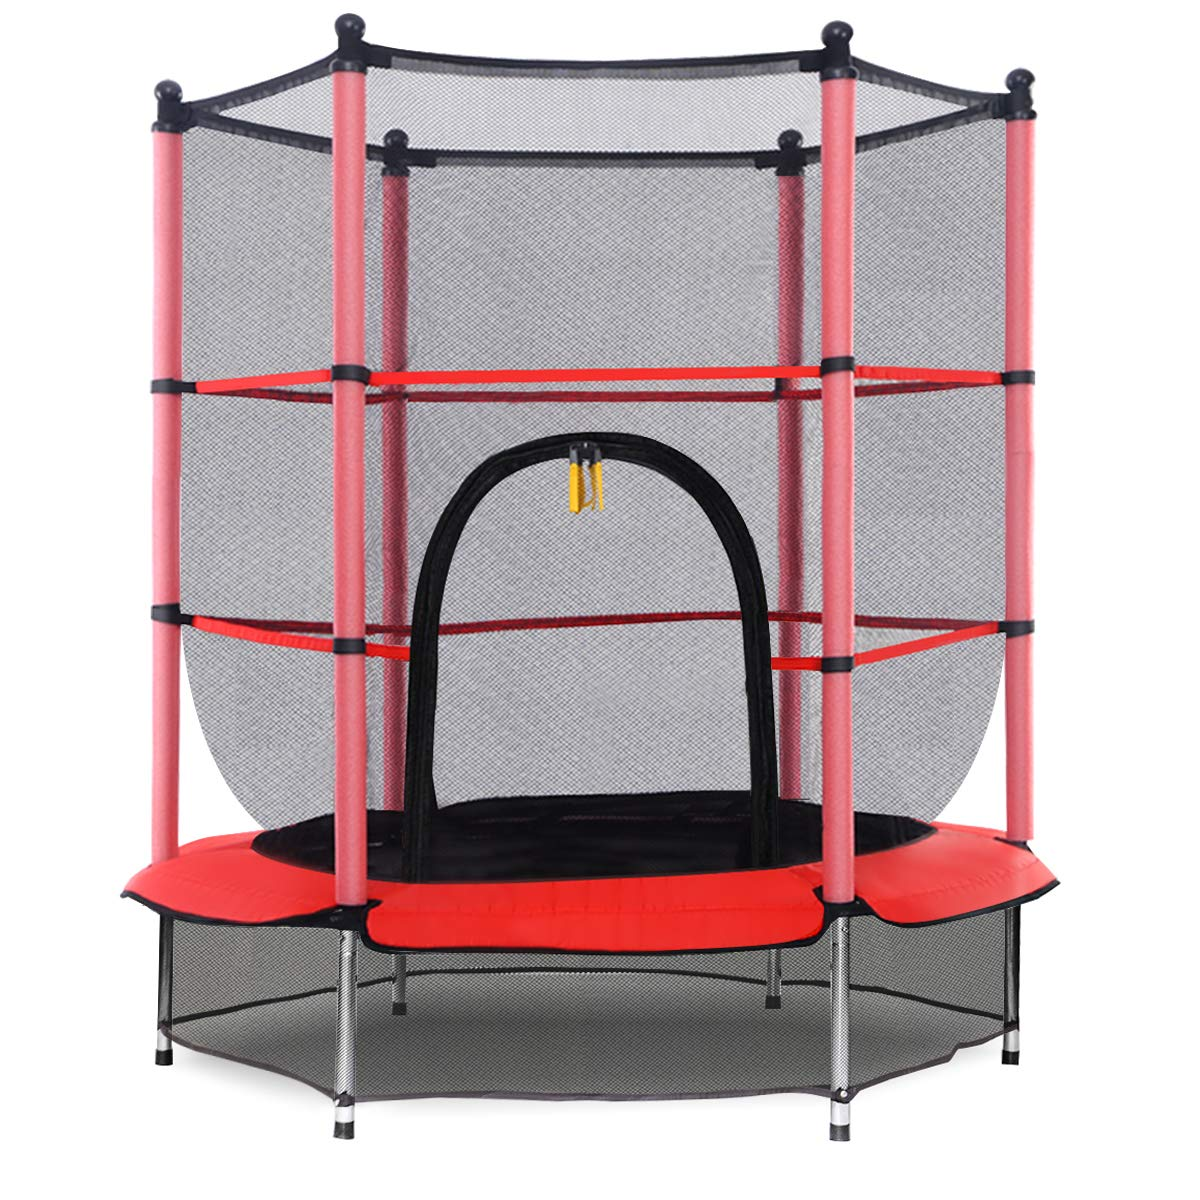 Giantex 55'' Round Kids Mini Jumping Trampoline W/Safety Pad Enclosure Combo (Red) by Giantex